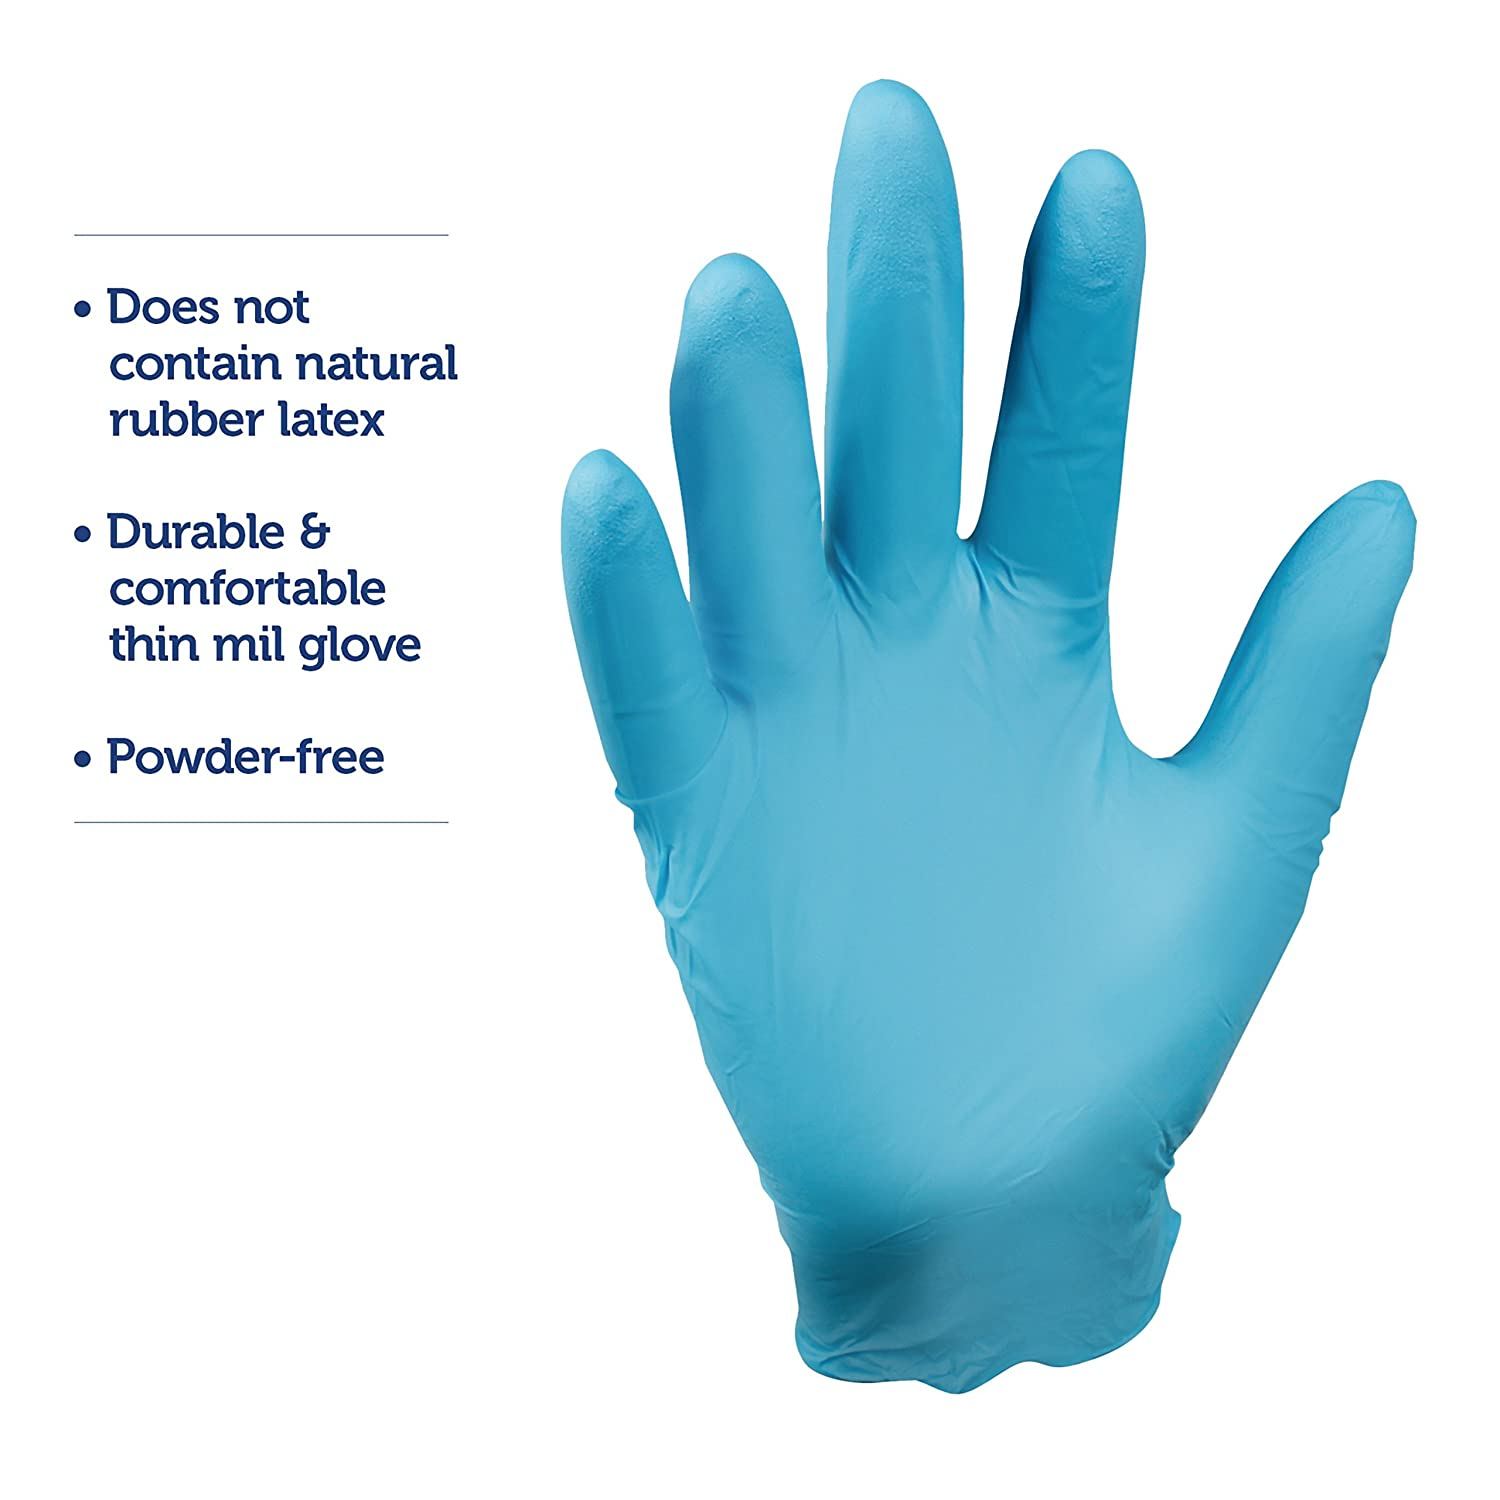 Amazon.com: Kimberly Clark Safety 57371 Nitrile Kleenguard G10 Gloves,  Small, Blue (Pack of 100): Industrial & Scientific